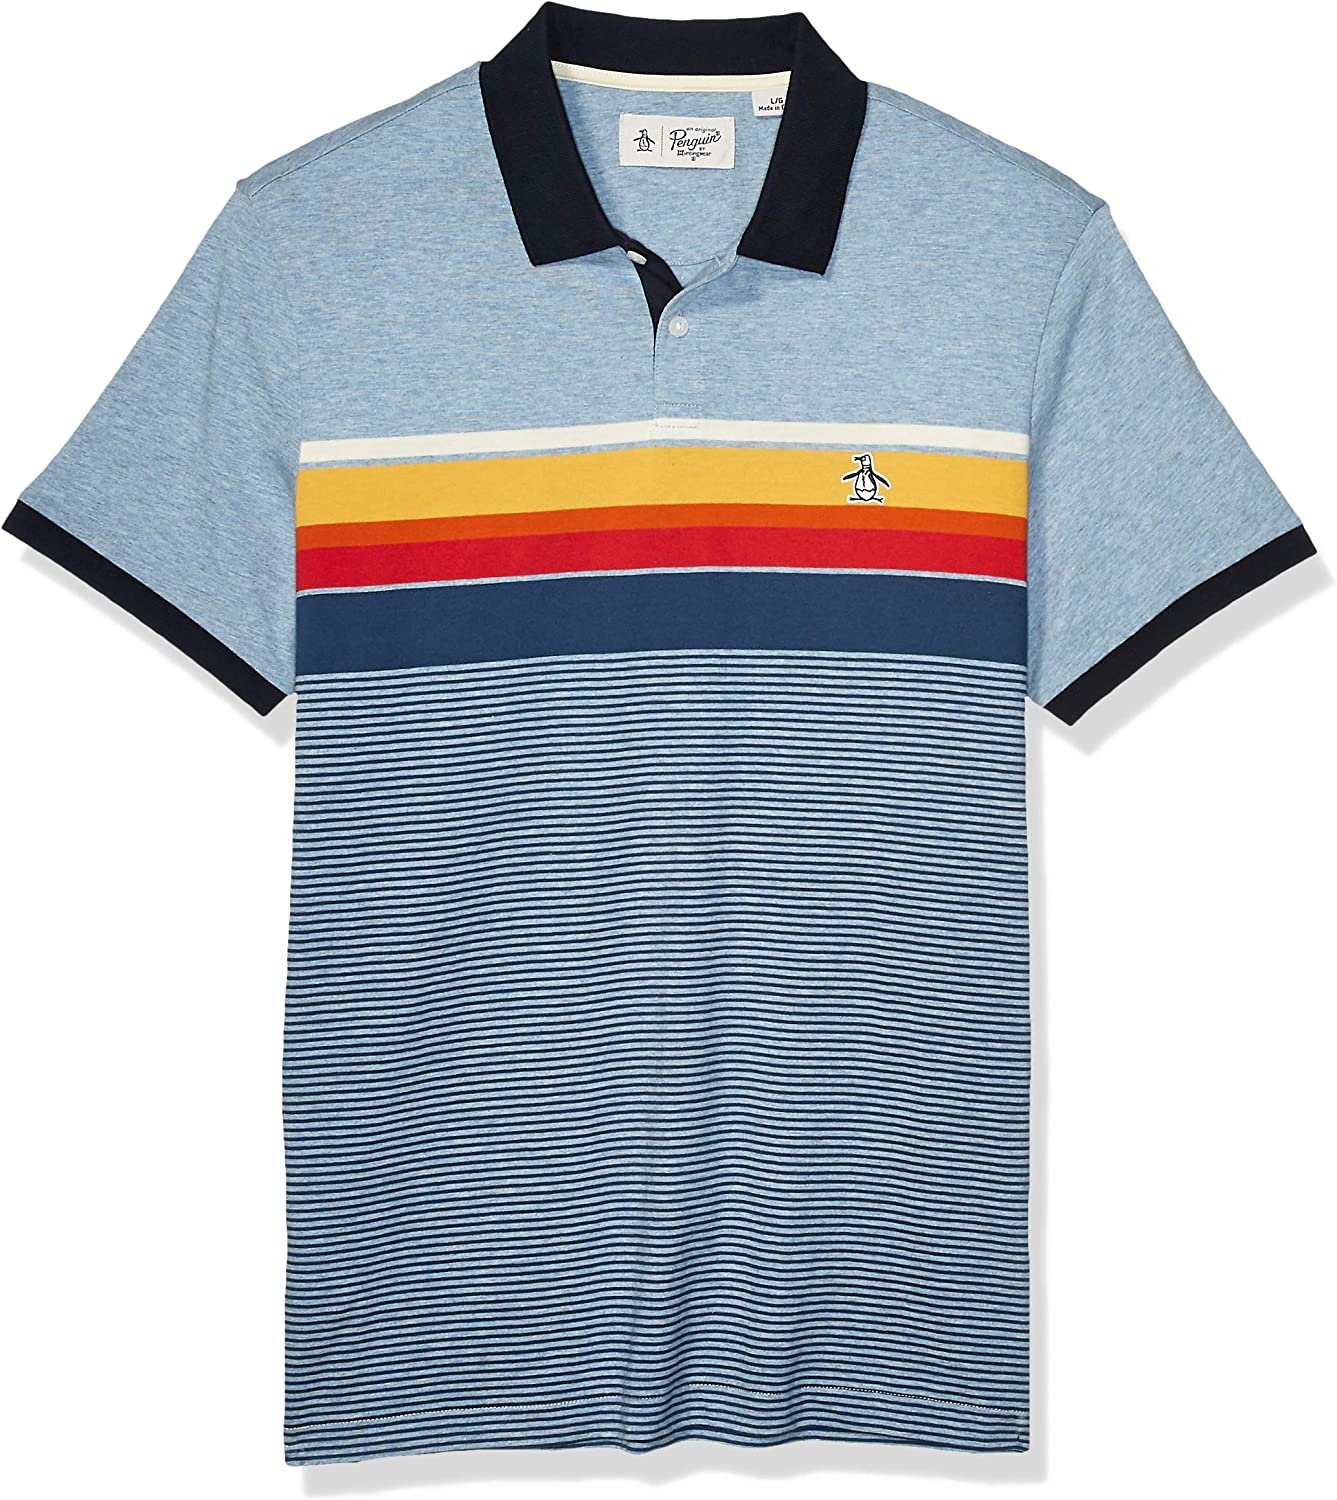 Original Penguin Mens Short Sleeve Stripe Polo